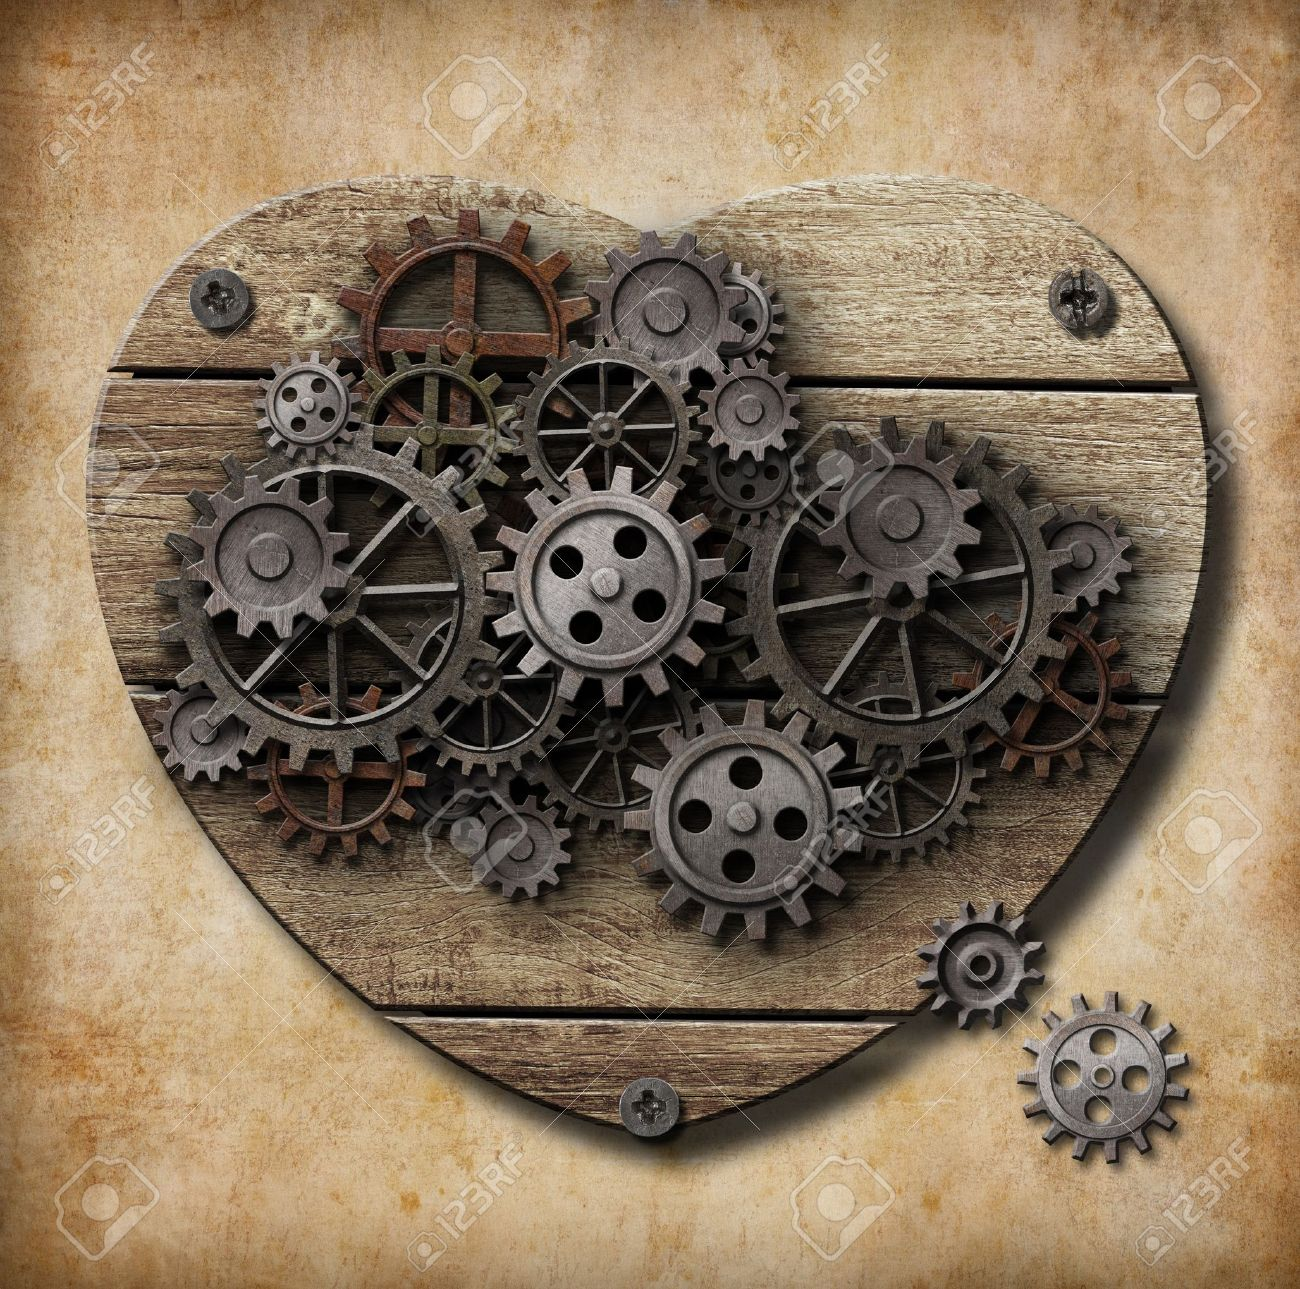 Aged human heart model made of rusty metal gears Stock Photo - 17847886